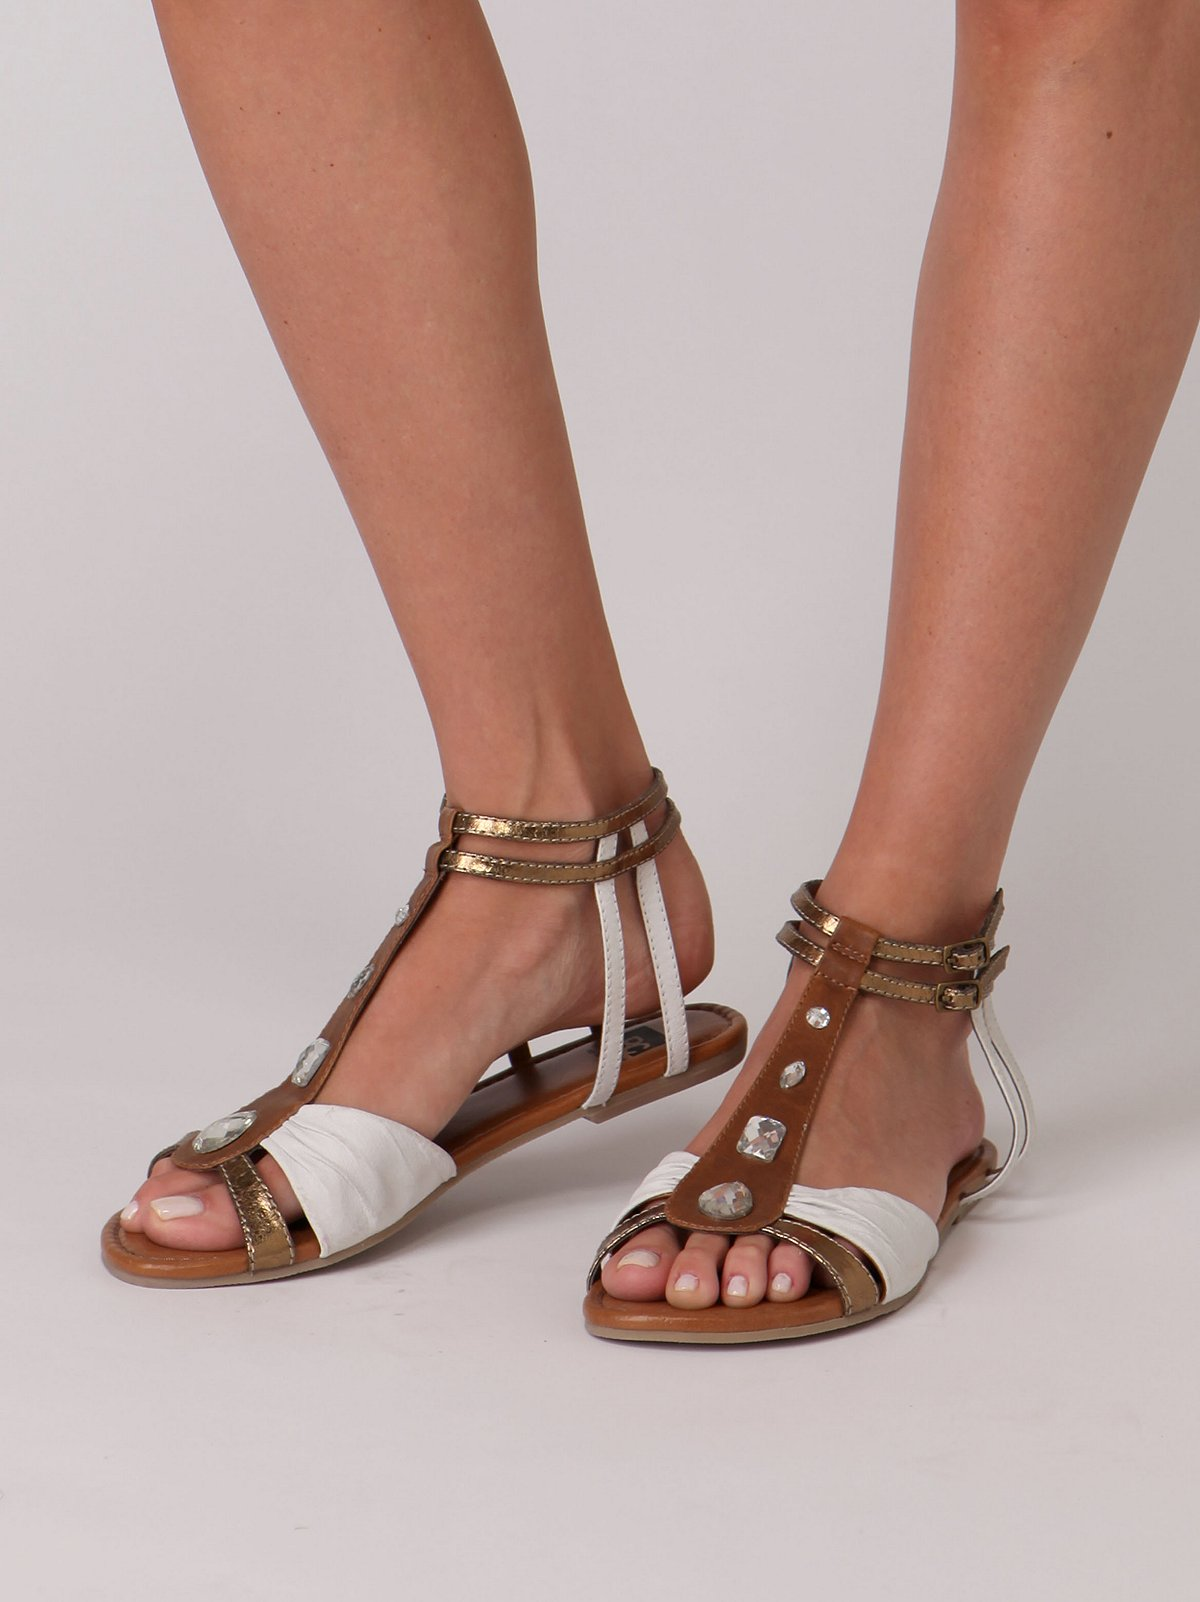 Tear Drop Sandal